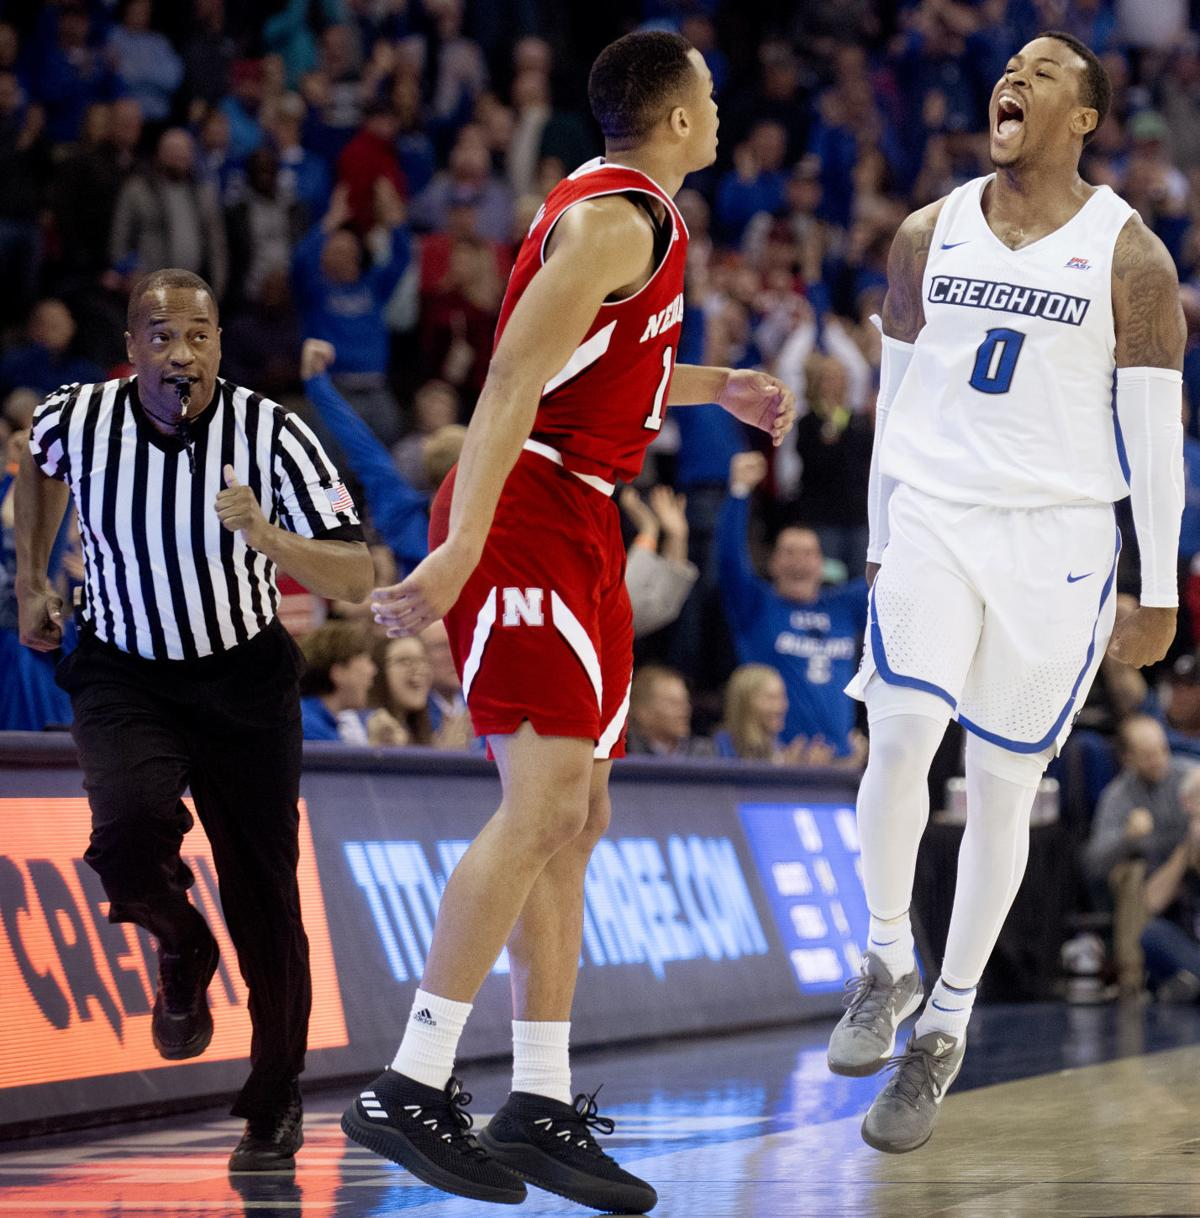 Nebraska vs. Creighton, 12/9/17